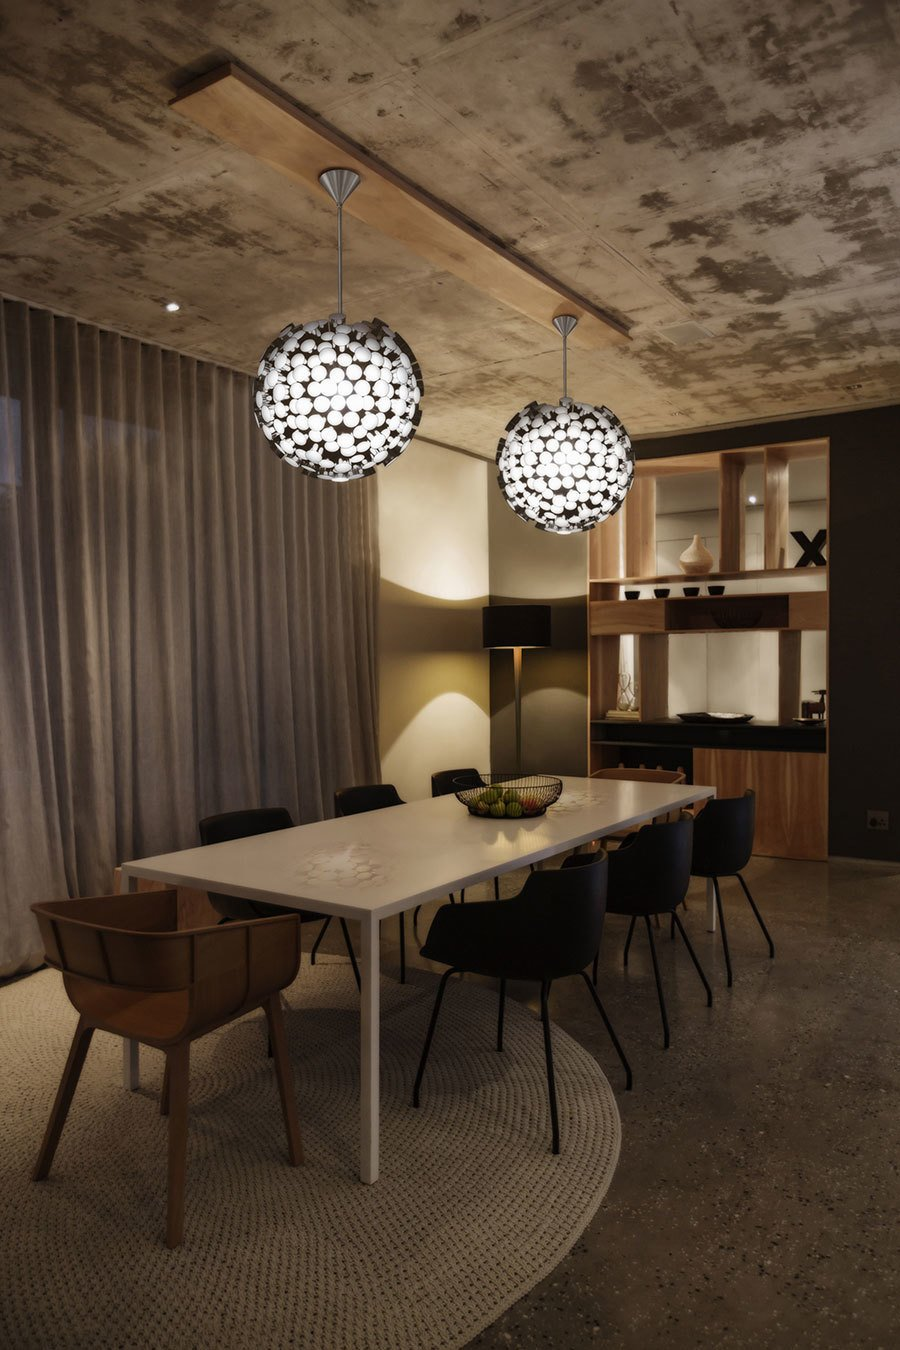 What once was a warehouse is now a luxury condo. This dining room features a pair of Asteroid Pendants. Delicious Dining Room Lighting by Boyd Lighting